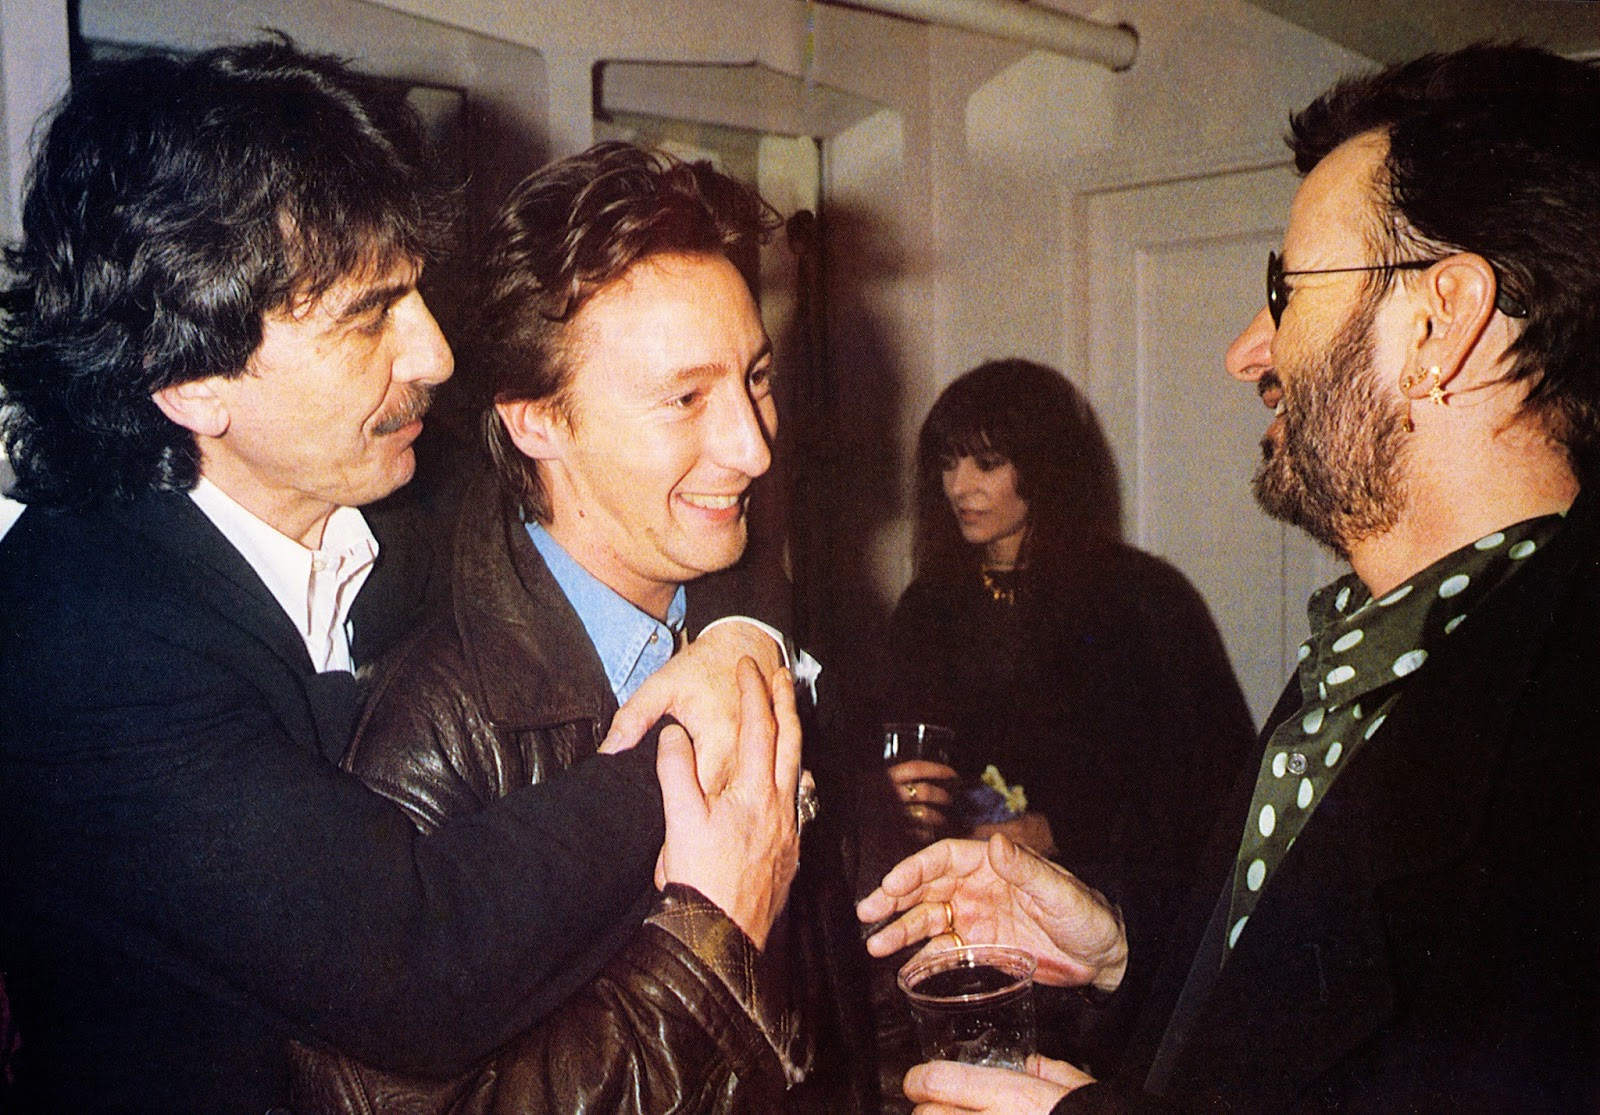 George Harrison Julian Lennon Maureen Starkey Tigrett And Ringo Starr Backstage At The Royal Albert Hall For Natural Law Party 1992